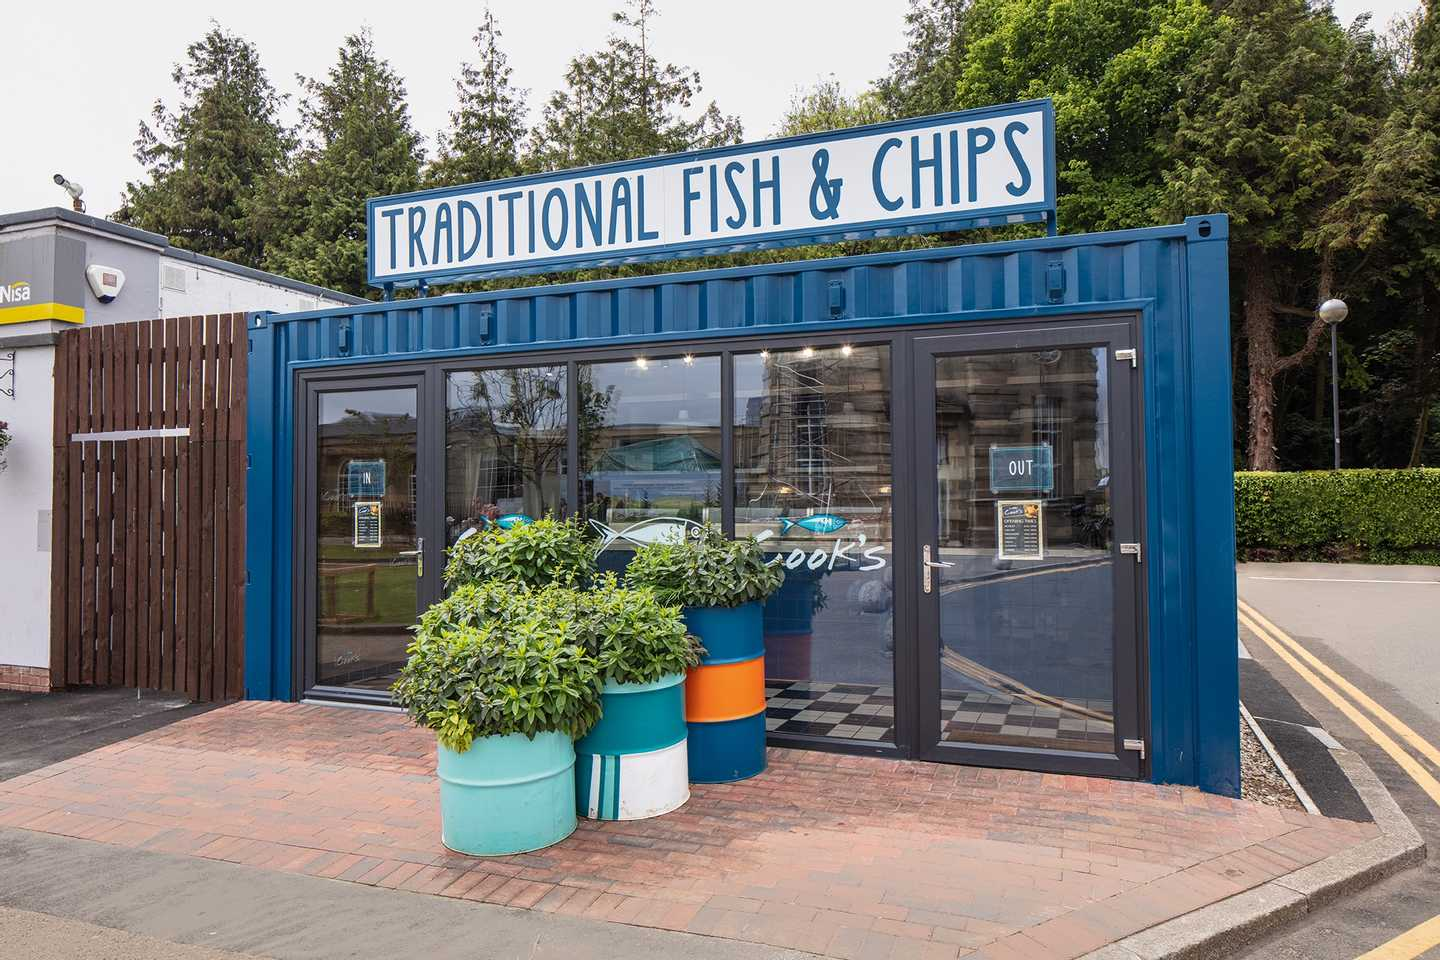 Representation of the Cook's Fish and Chip Shop